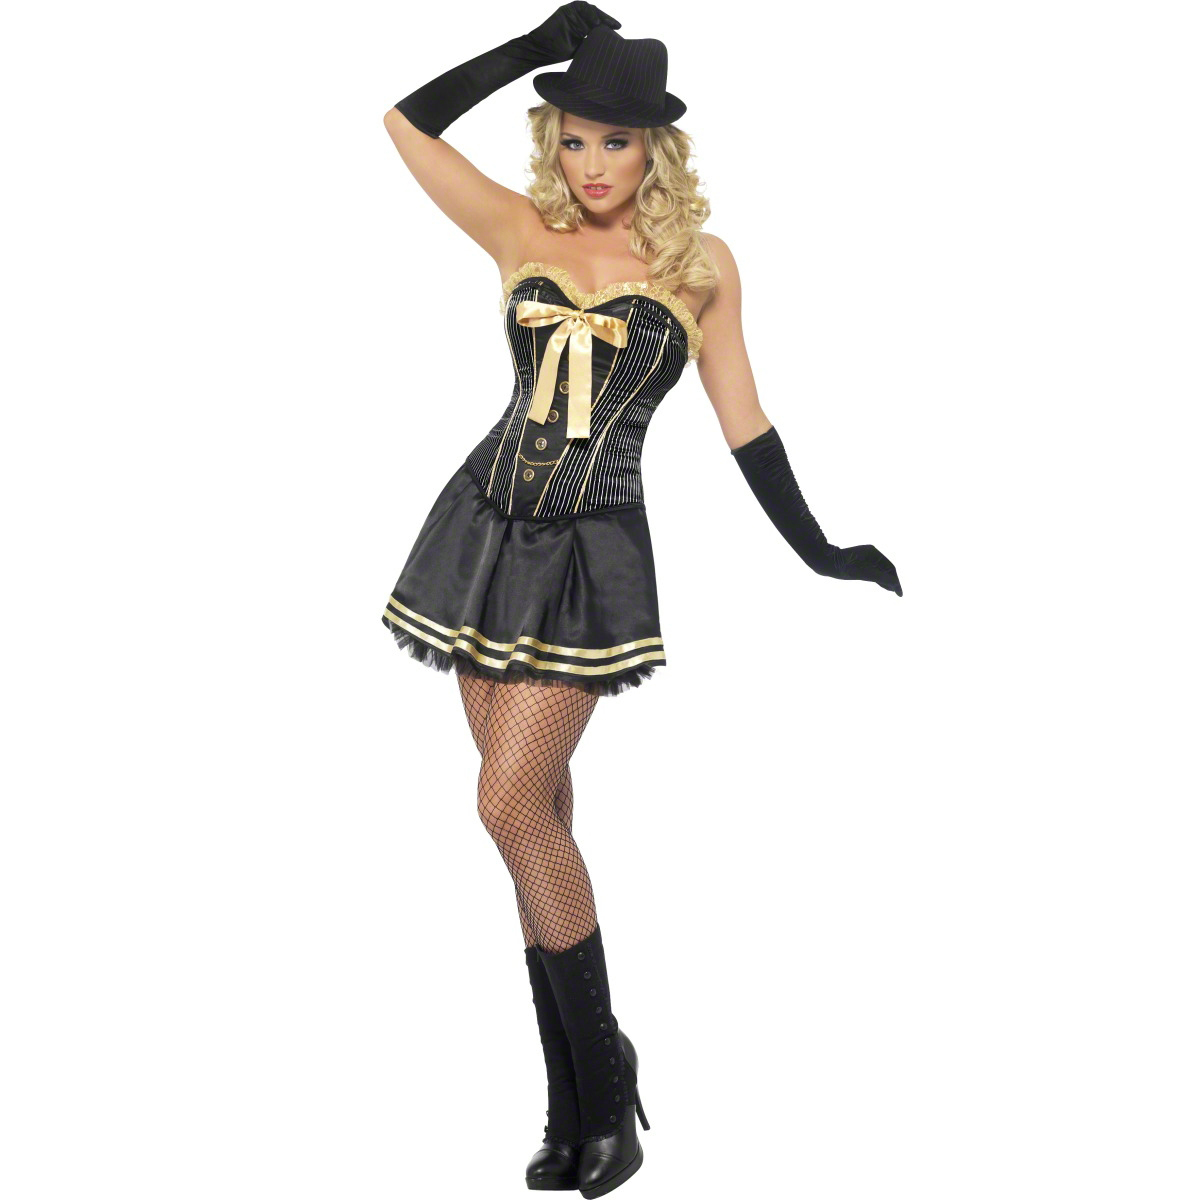 Innovative Saunter In Like A Ritzy Downton Doll And Turn Heads Wearing This Dazzlingly Glamorous Downton Doll Adult Costume! Get Your Bejeweled Downton Doll Dress Here Need Downtown Doll Womens Costume Shipped To You For Free?